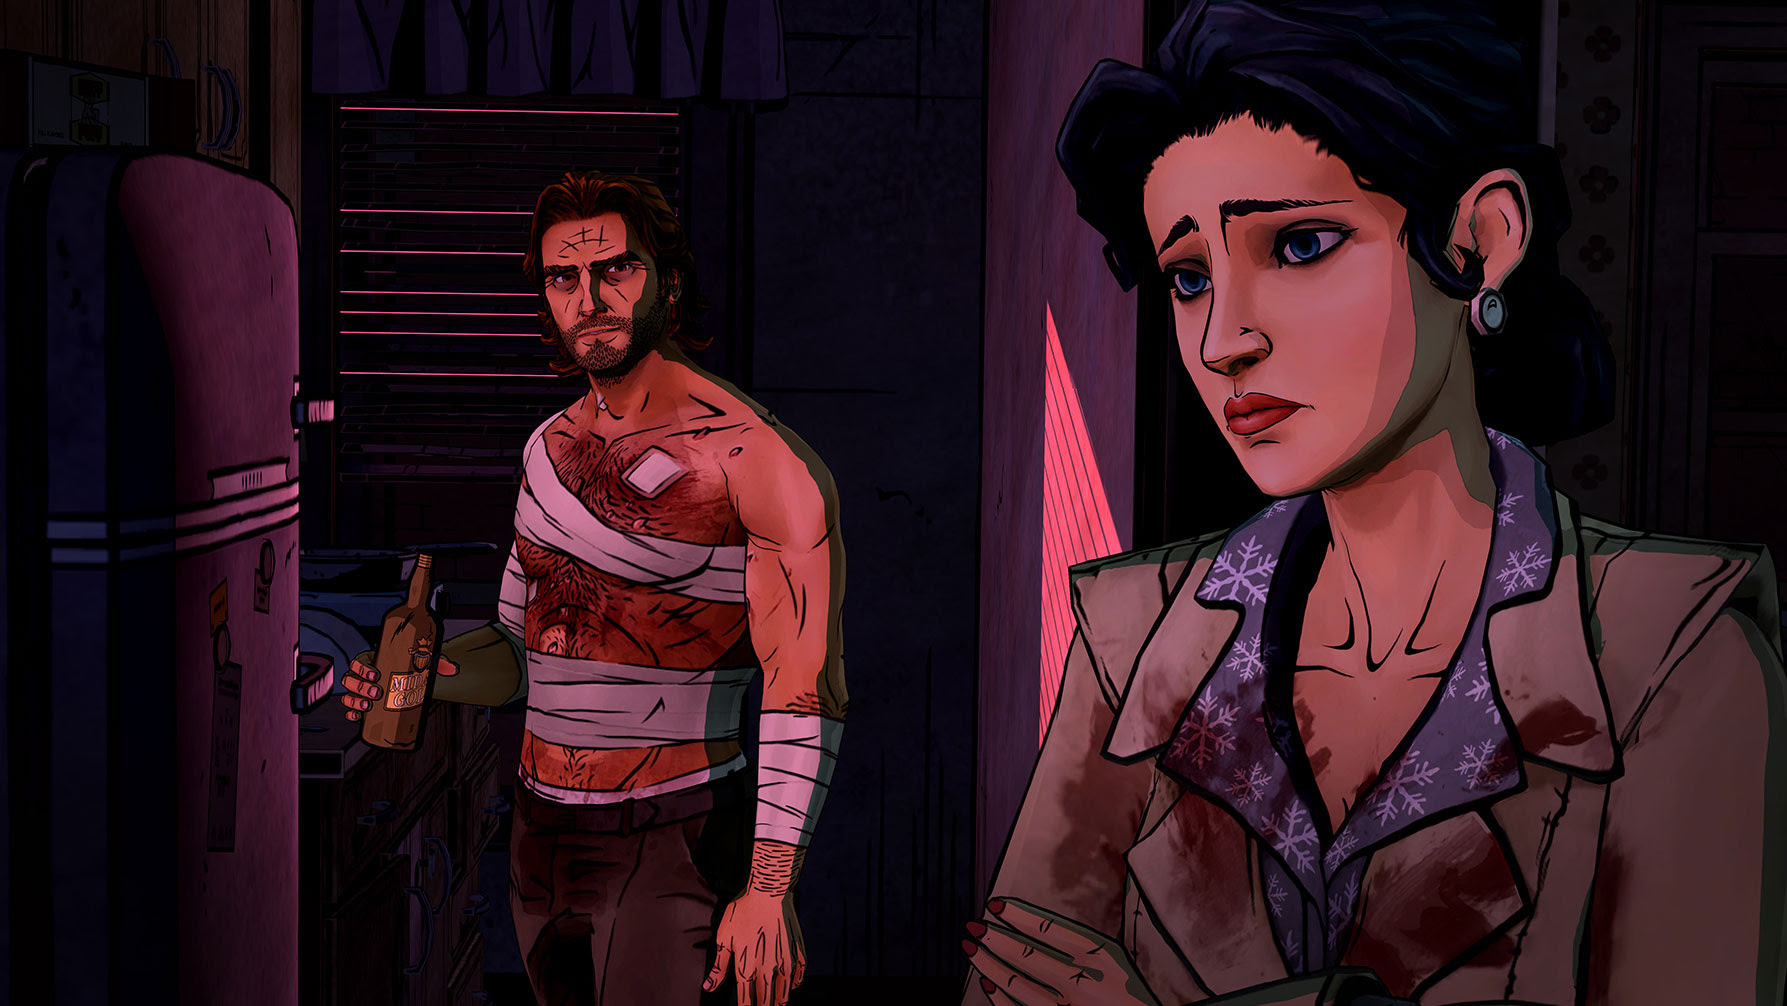 Telltale is teasing Comic-Con news, and fans are hungry for more Wolf Among Us screenshot